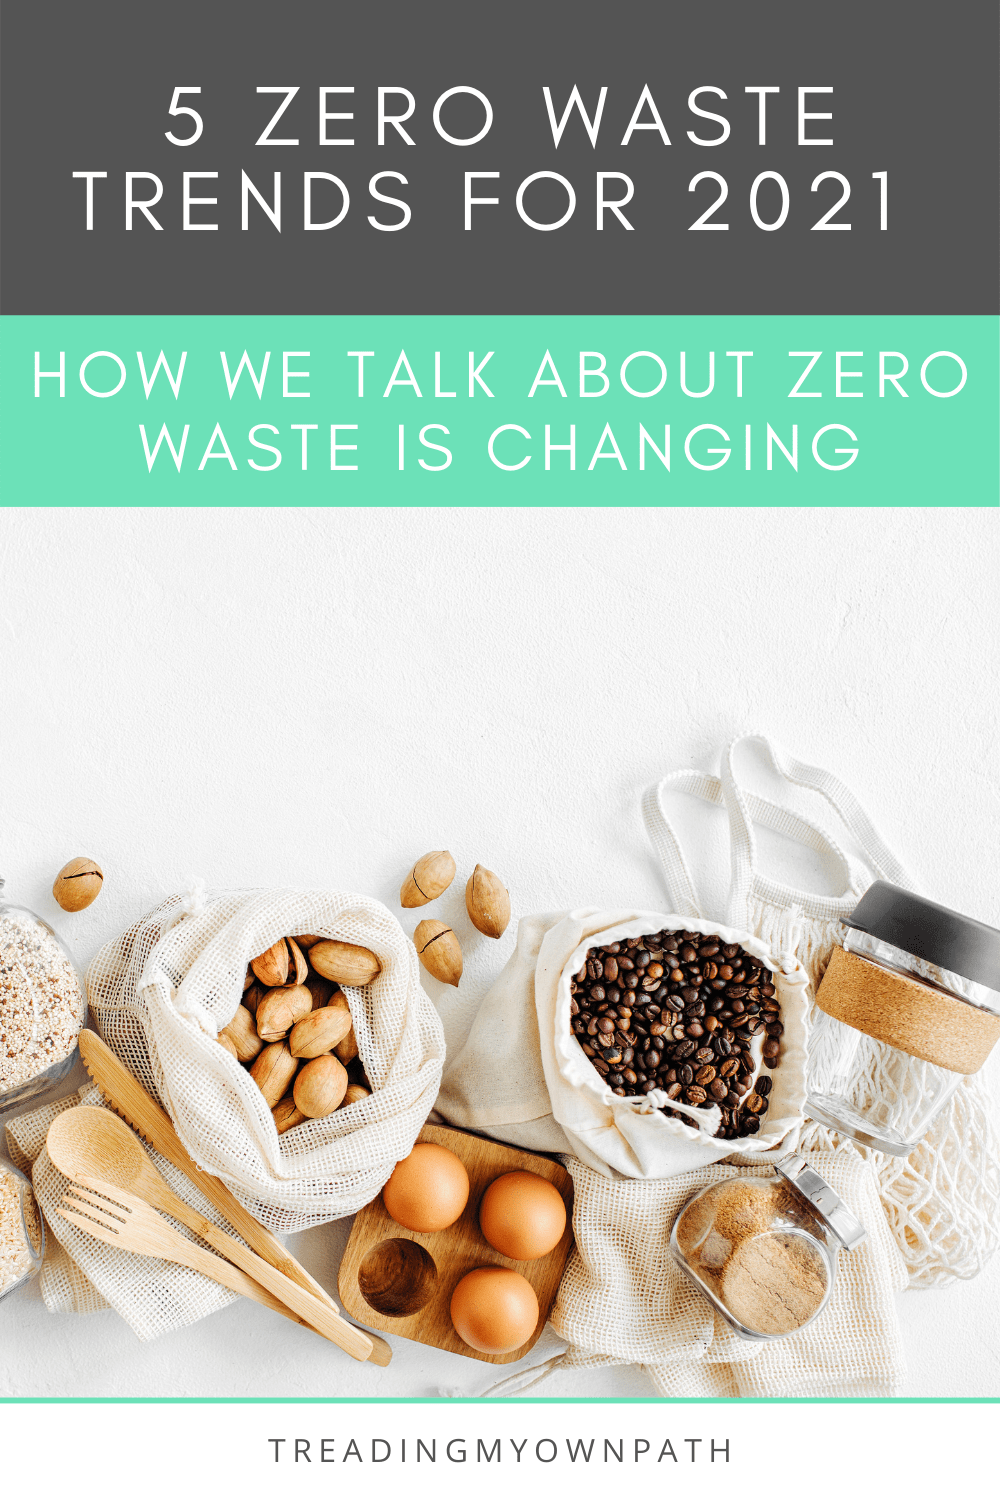 5 ways the zero waste / plastic-free conversation is changing in 2021